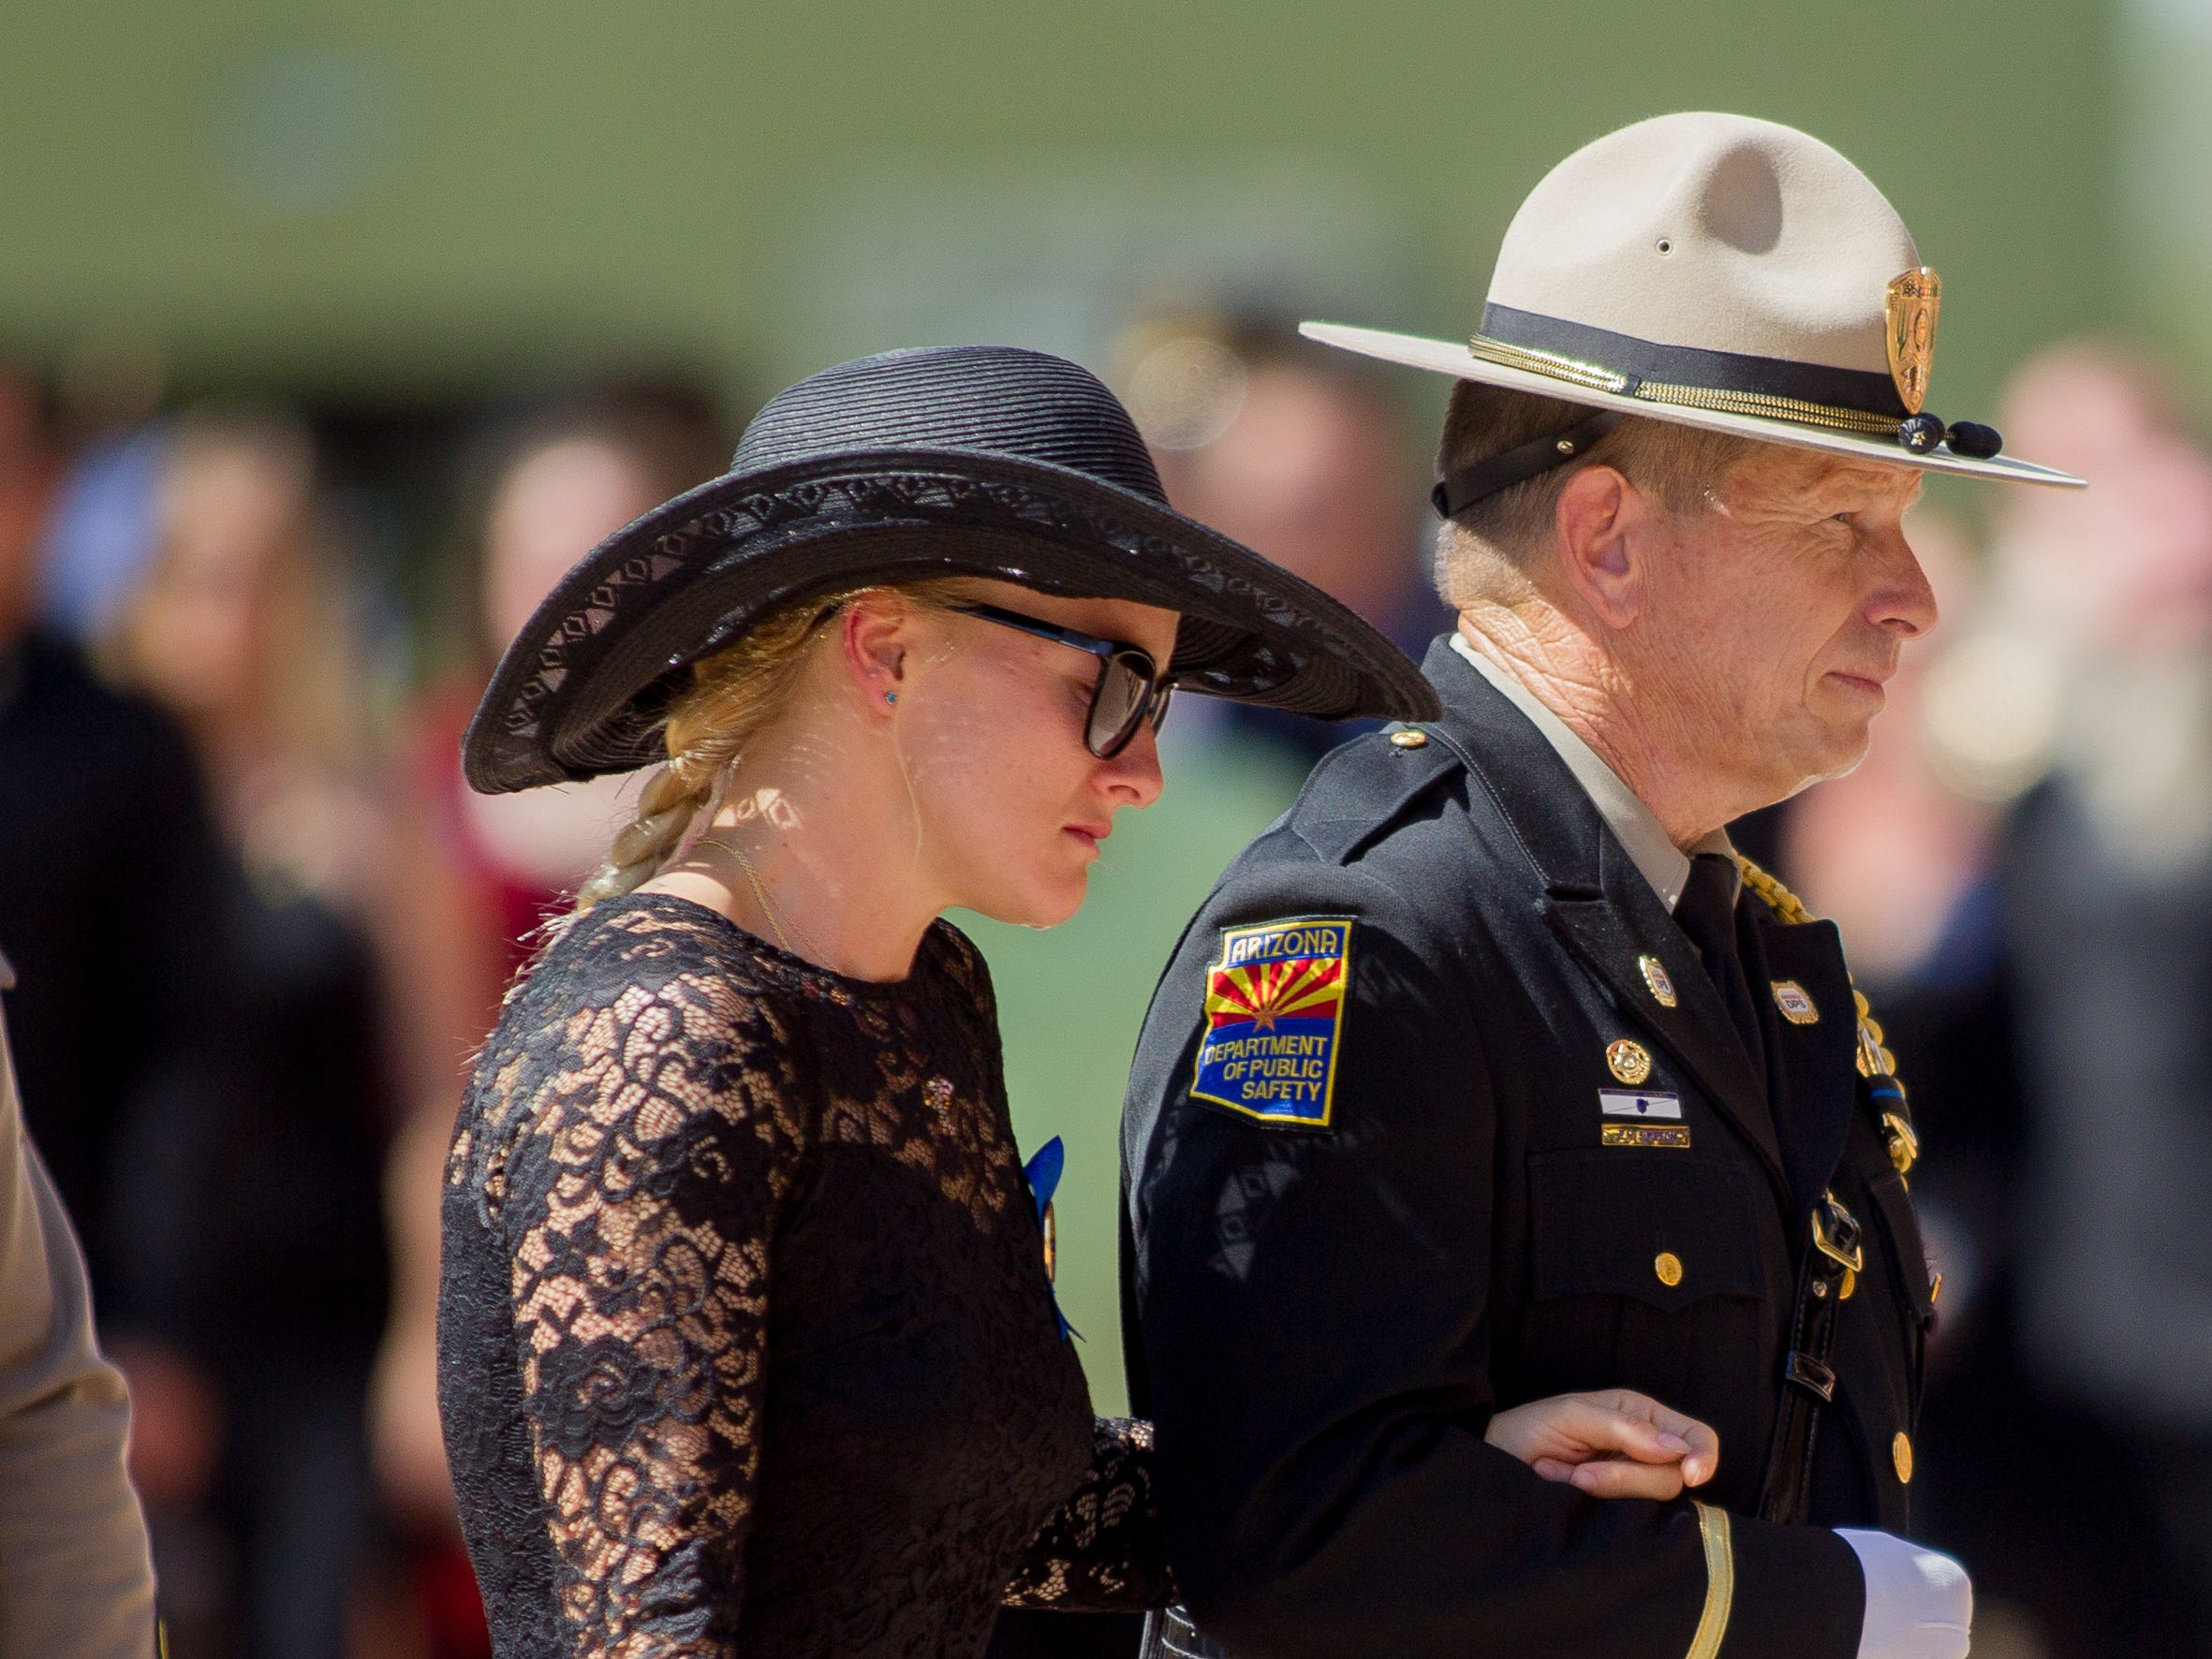 Family and friends are escorted in during the processional of fallen DPS Trooper Tyler Edenhofer's funeral on Aug. 3, 2018, at Christ's Church of the Valley in Peoria.